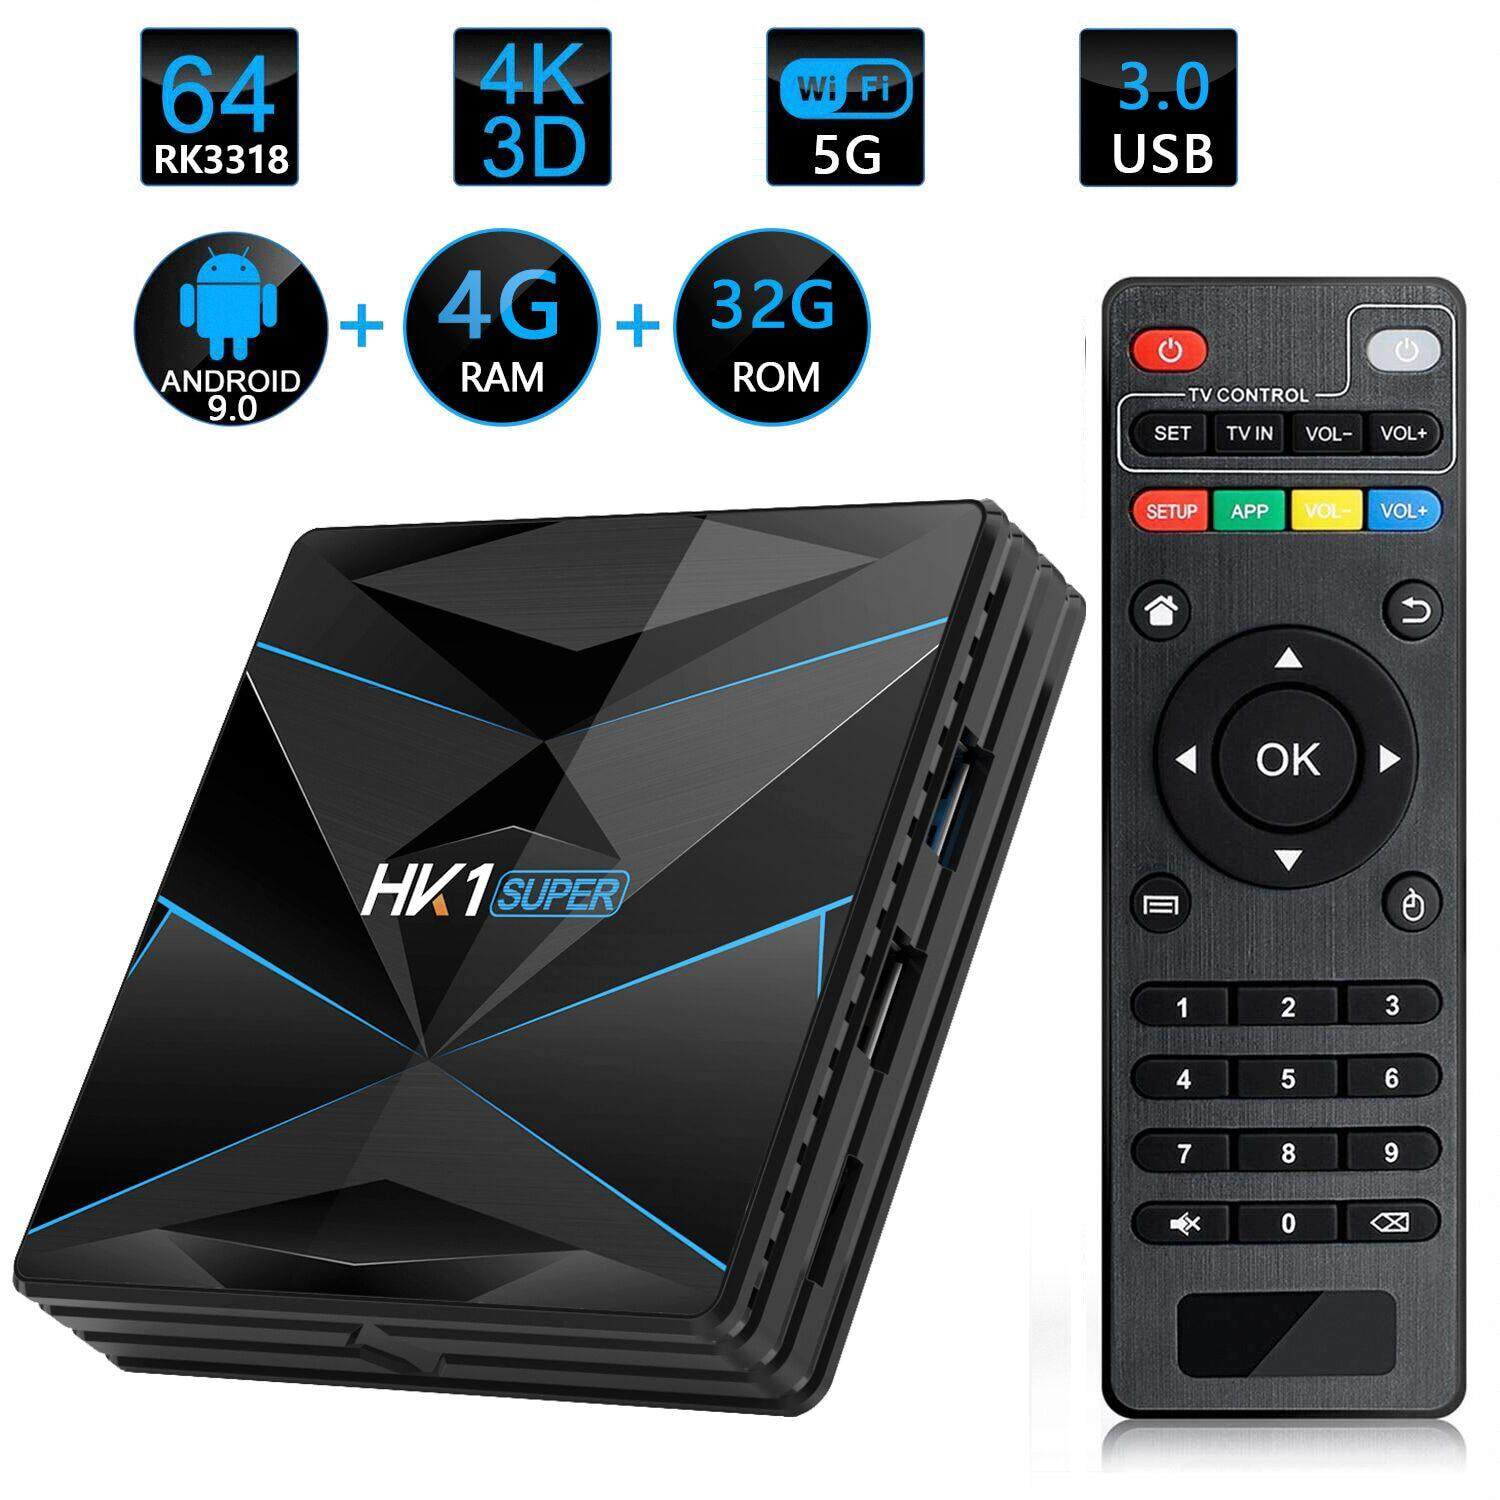 ยี่ห้อนี้ดีไหม  แพร่ 【HK1 Super】 Android 9 0 Smart TV BOX Google asistente RK3318 4K 3D Ultra HD 4G 64G TV wifi Play Store Apps gratis rápido Set top Box TV BOX